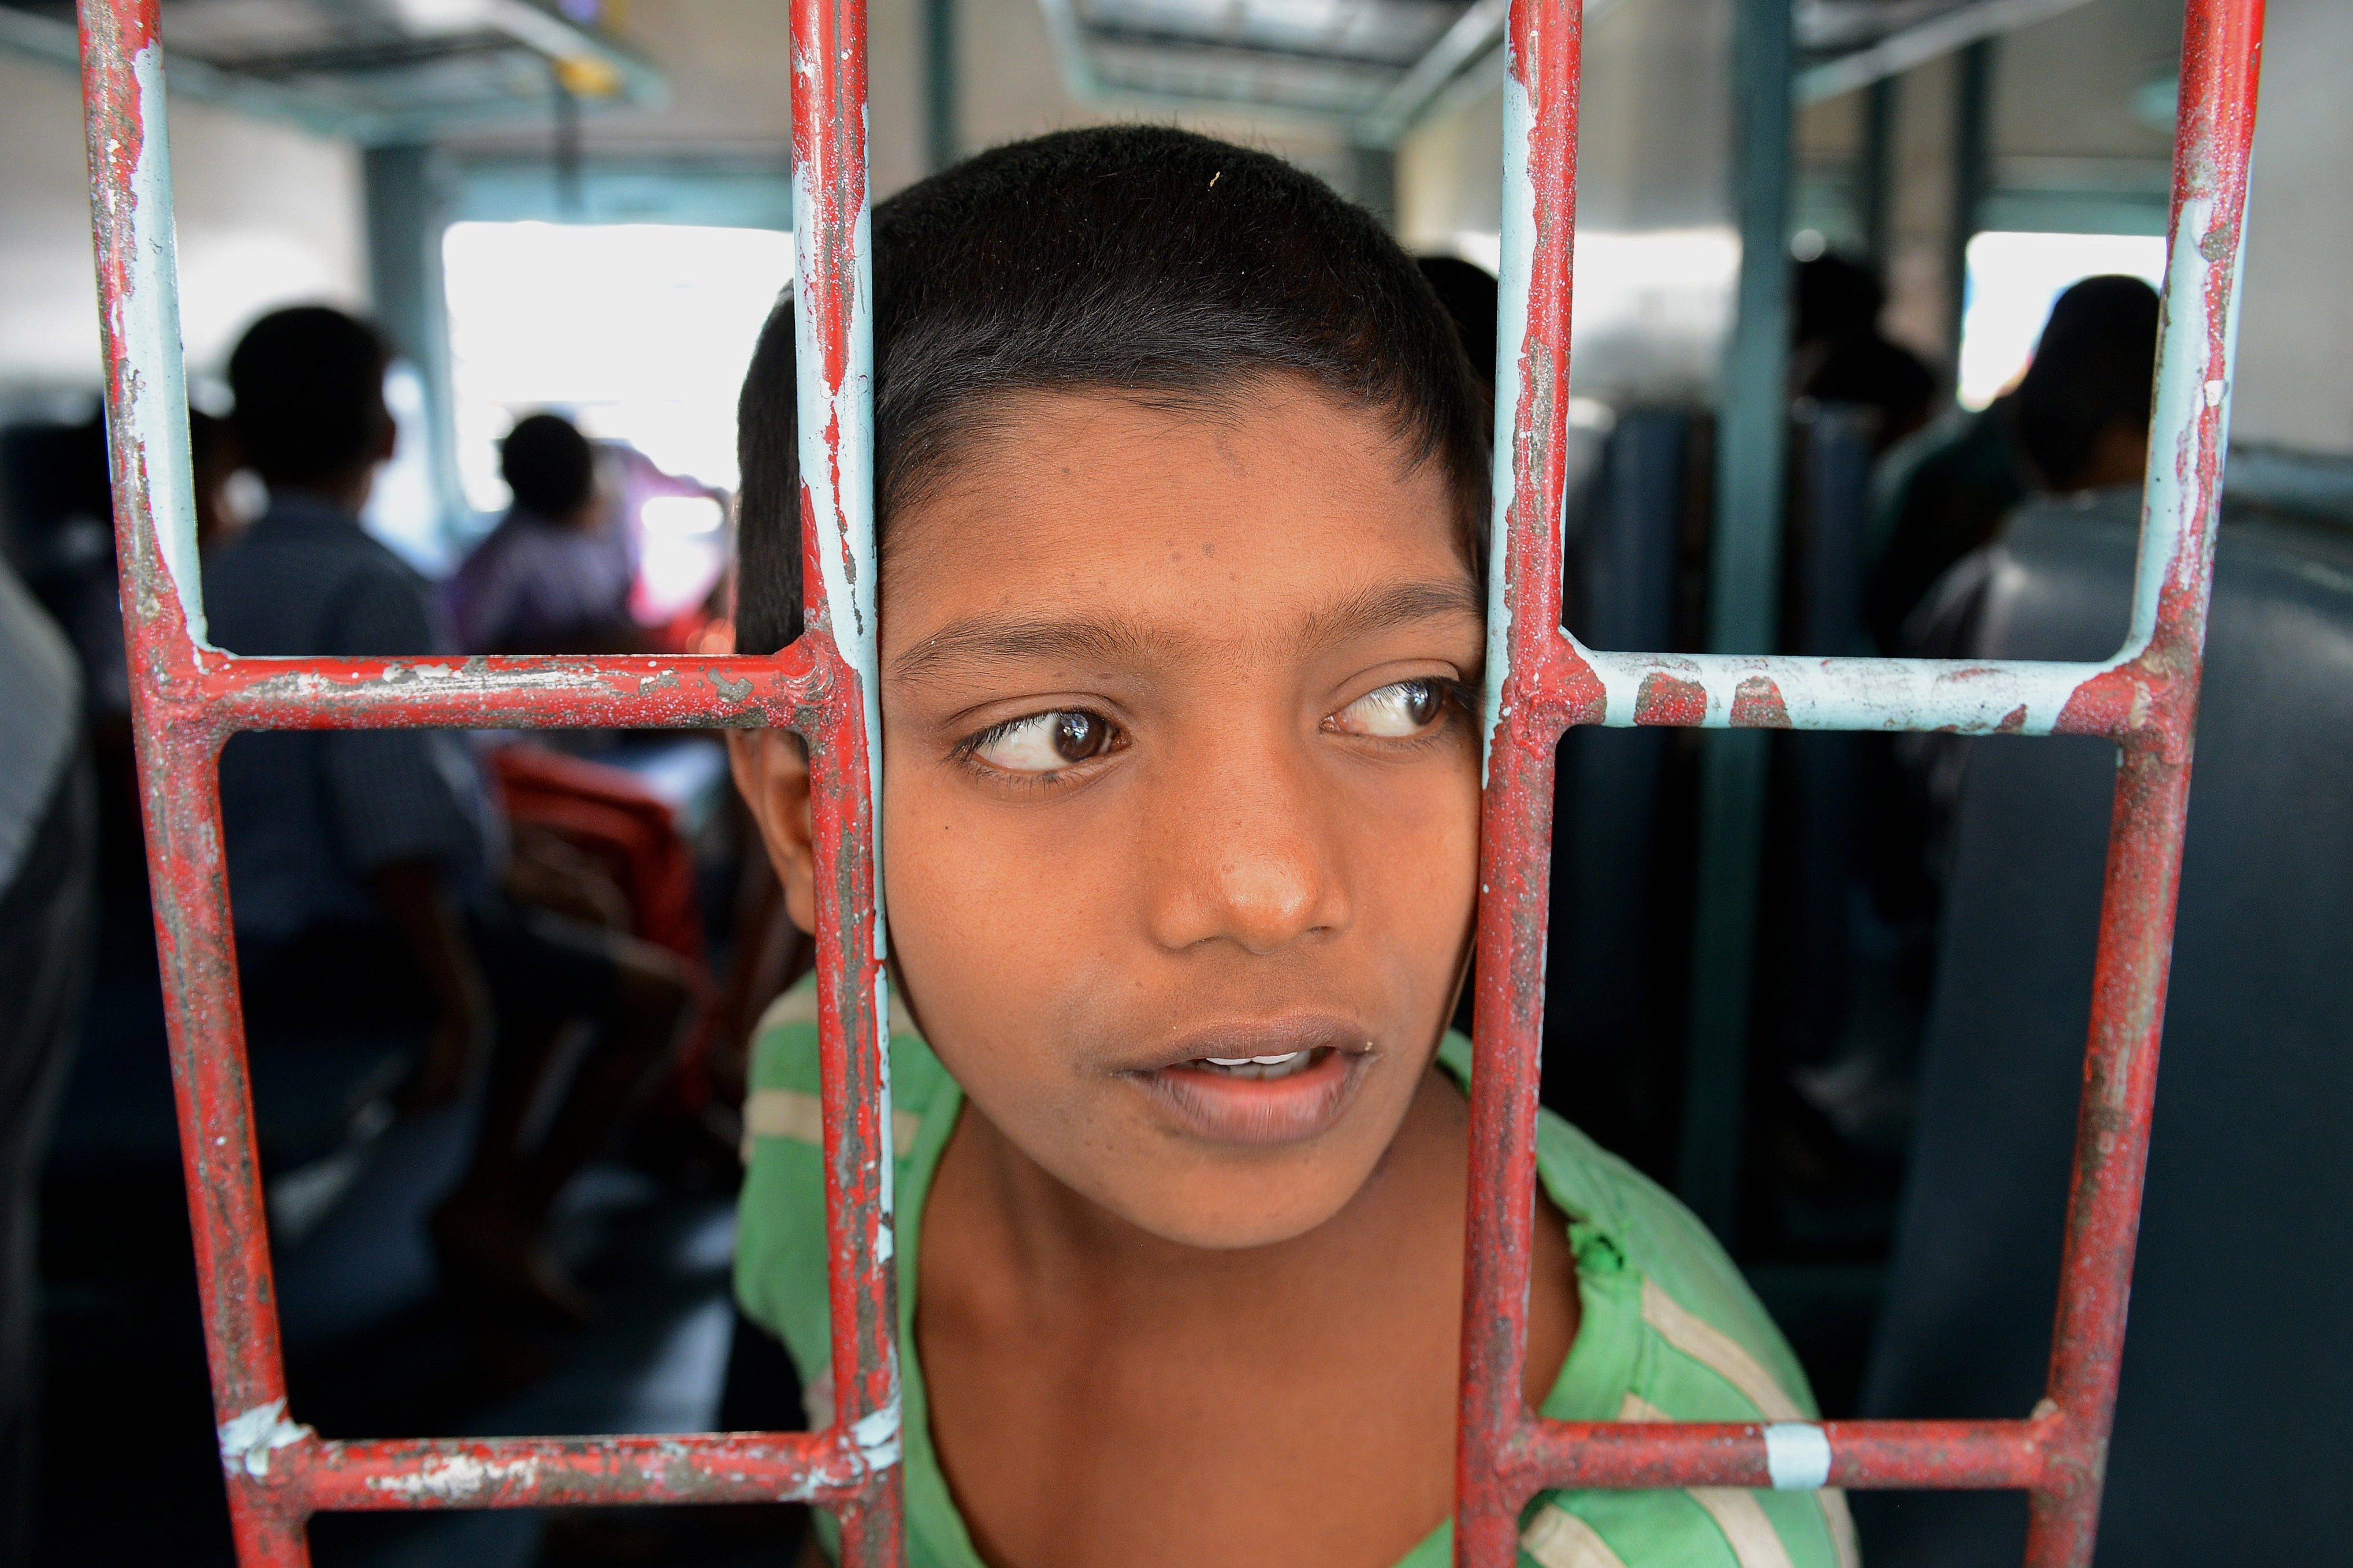 india child rights